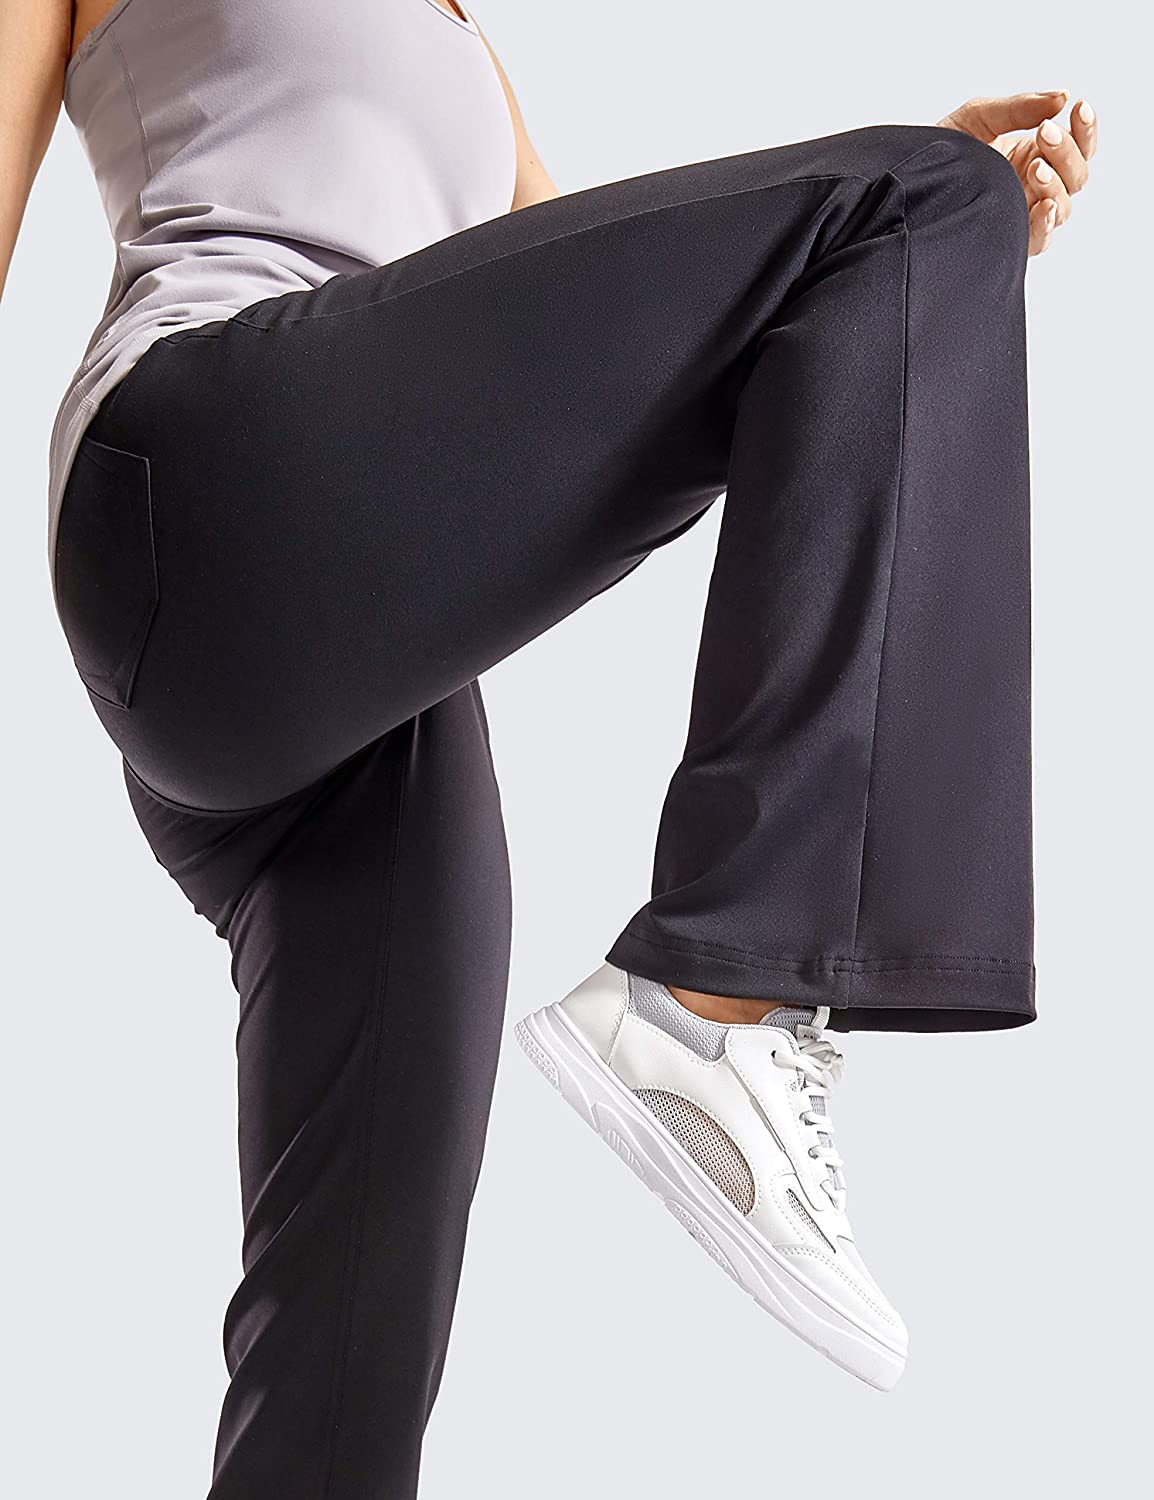 CRZ YOGA Flare Yoga Pants for Women Slim Fit Bootcut Elastic Waist Mid Rise Causal Bootleg Work Pants with Pockets